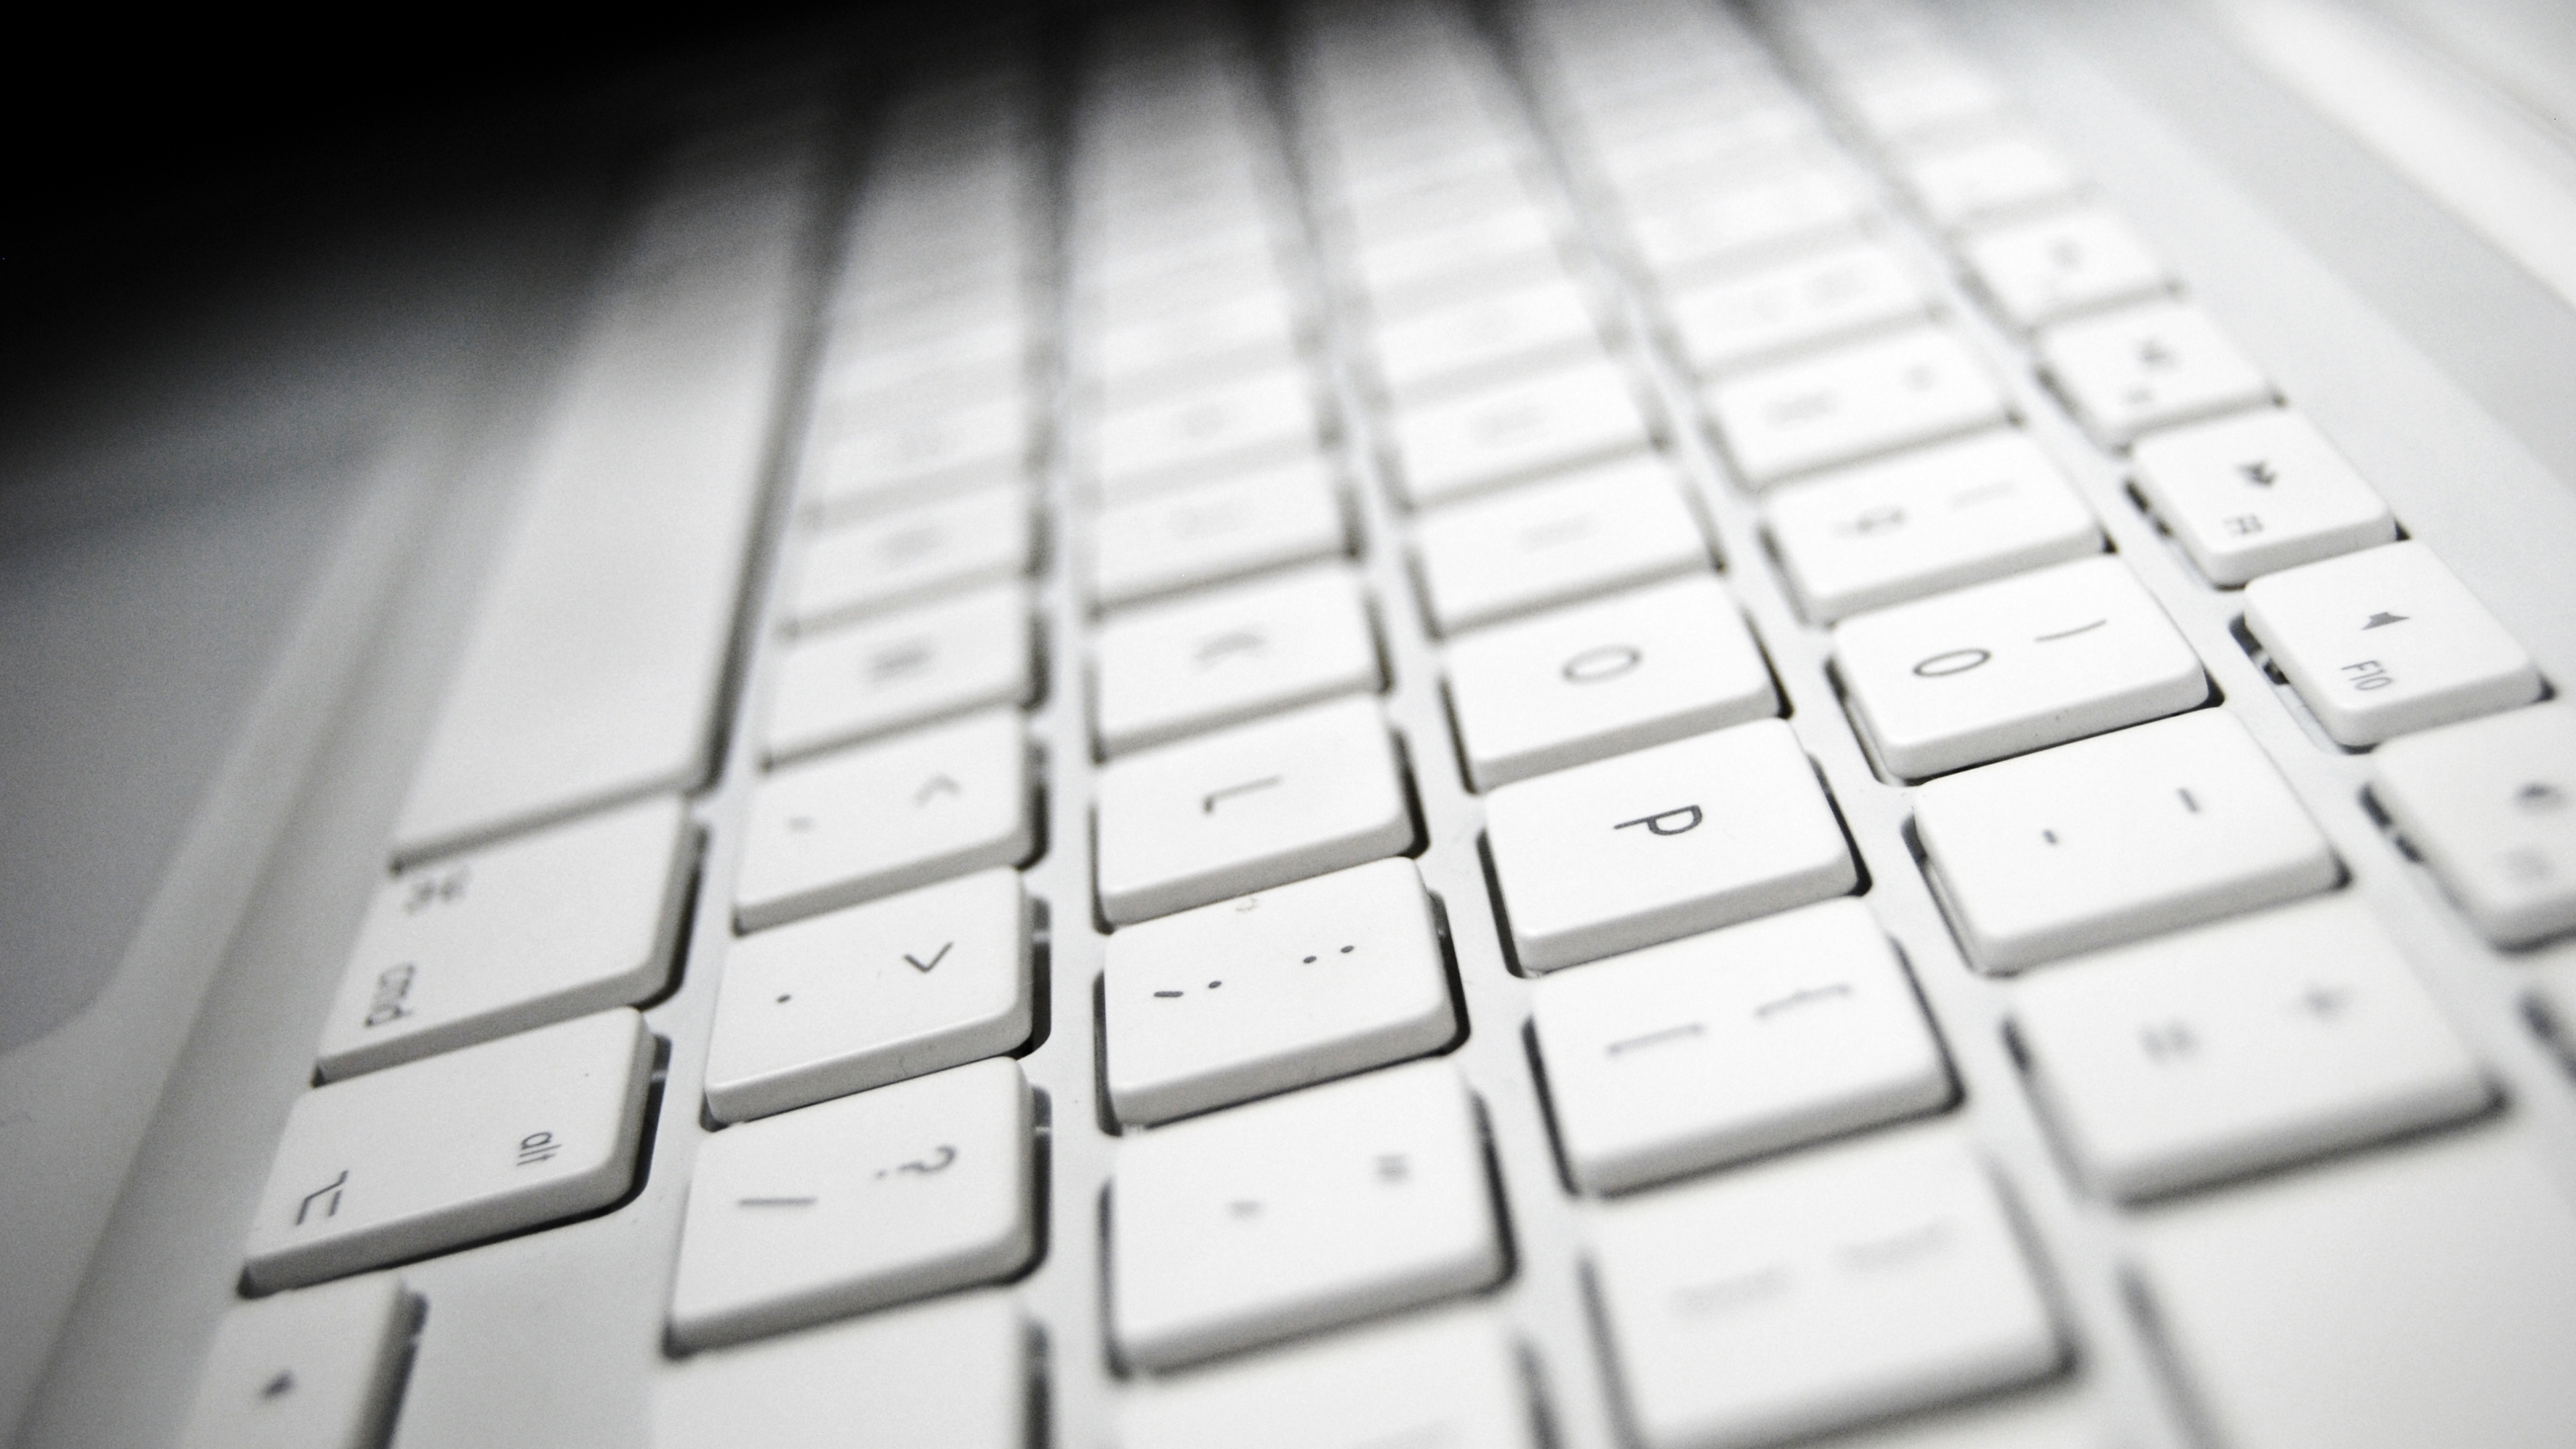 3840x2160 Keyboard White Mac 4k Wallpaper Hd Hi Tech 4k Wallpapers Images Photos And Background